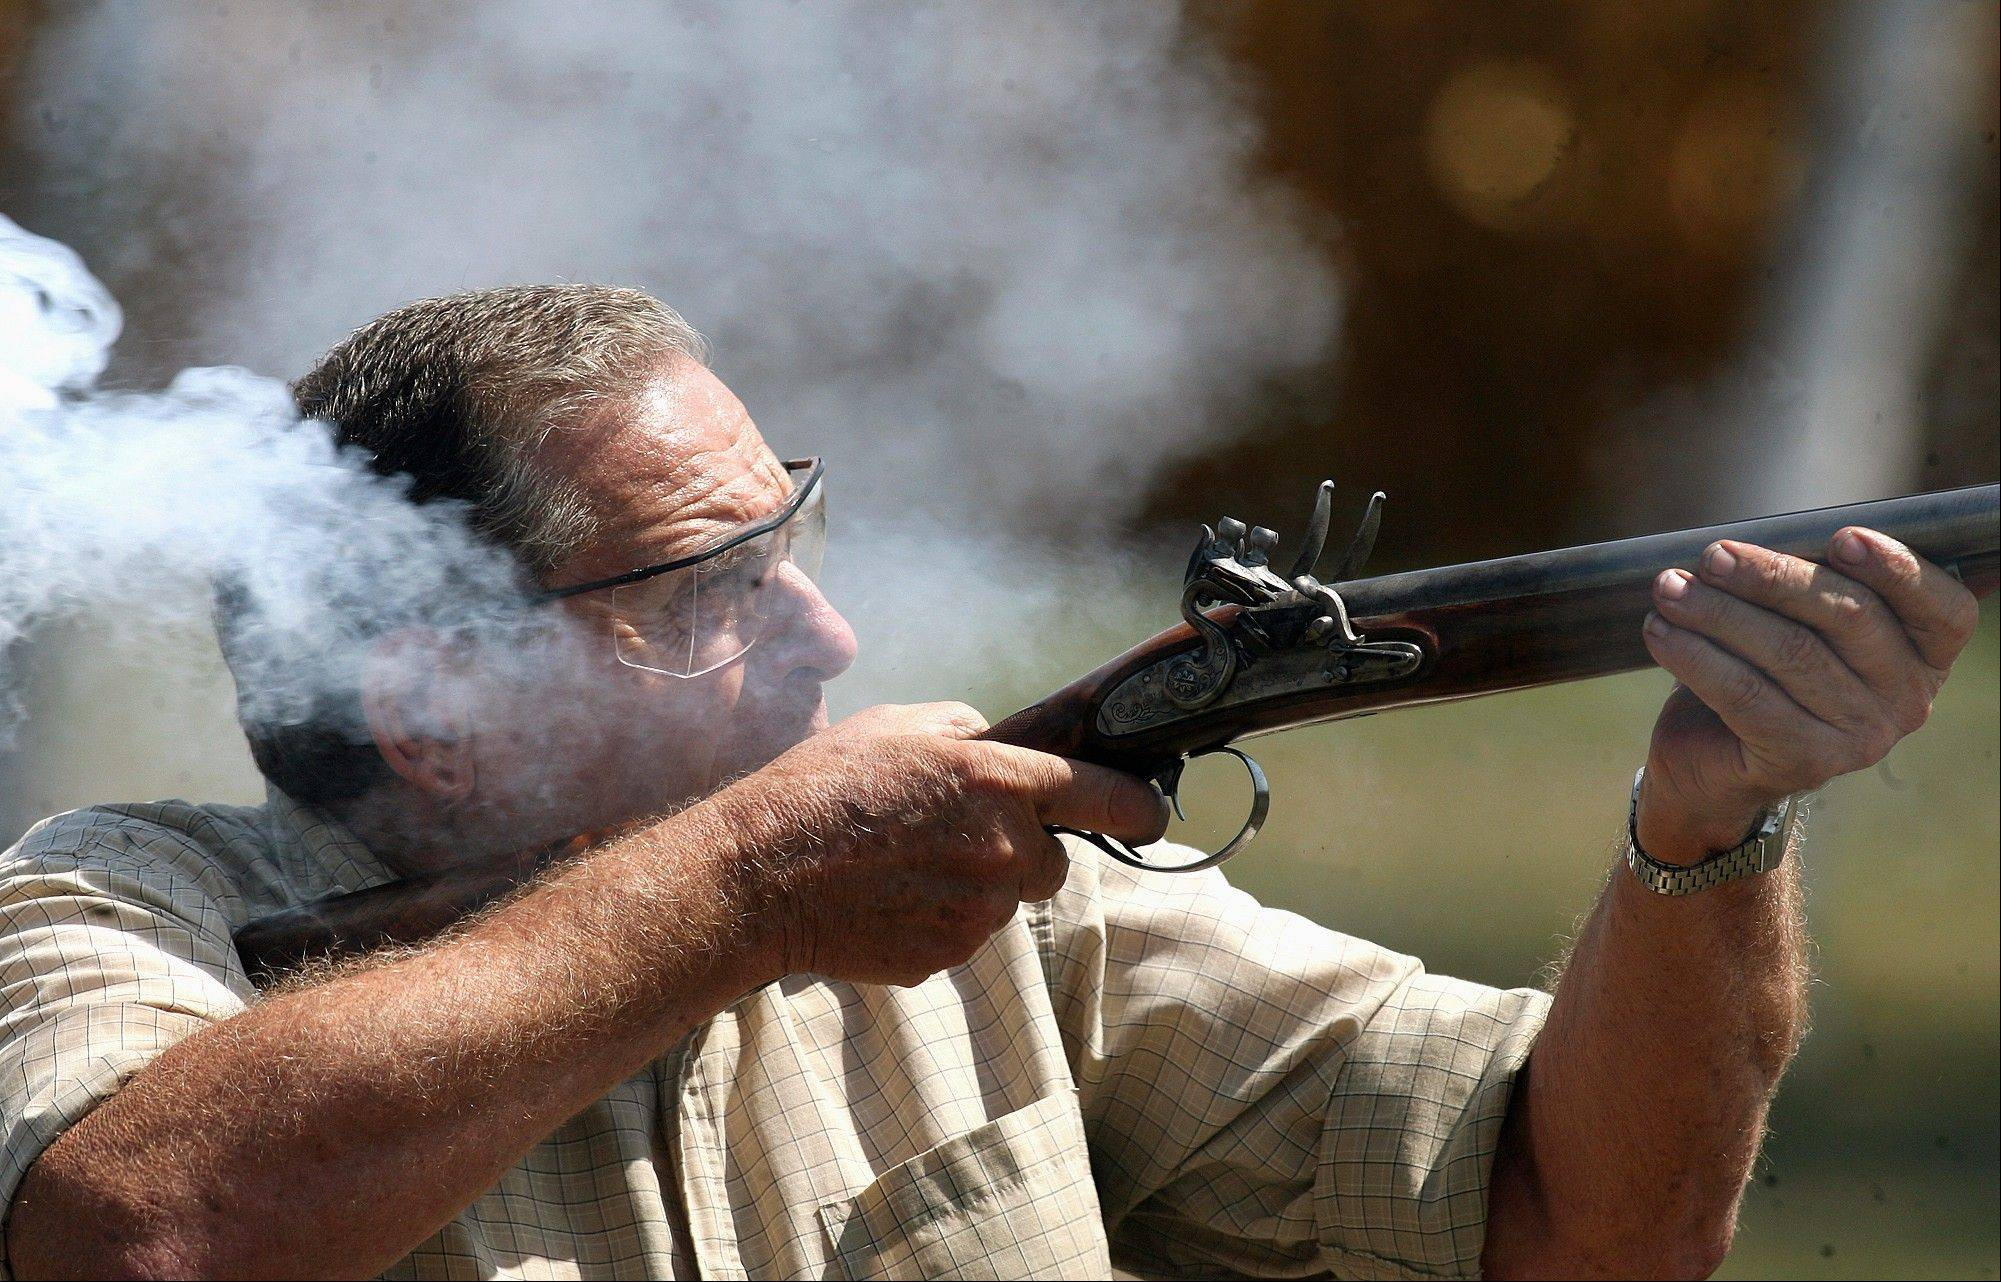 Chuck Lindsey fires a double-barreled, flintlock shotgun he built during trapshooting practice with friends in rural southwest Logan County. Lindsey builds muzzleloading firearms, especially flintlocks that were in use in the late 18th and early 19th centuries.